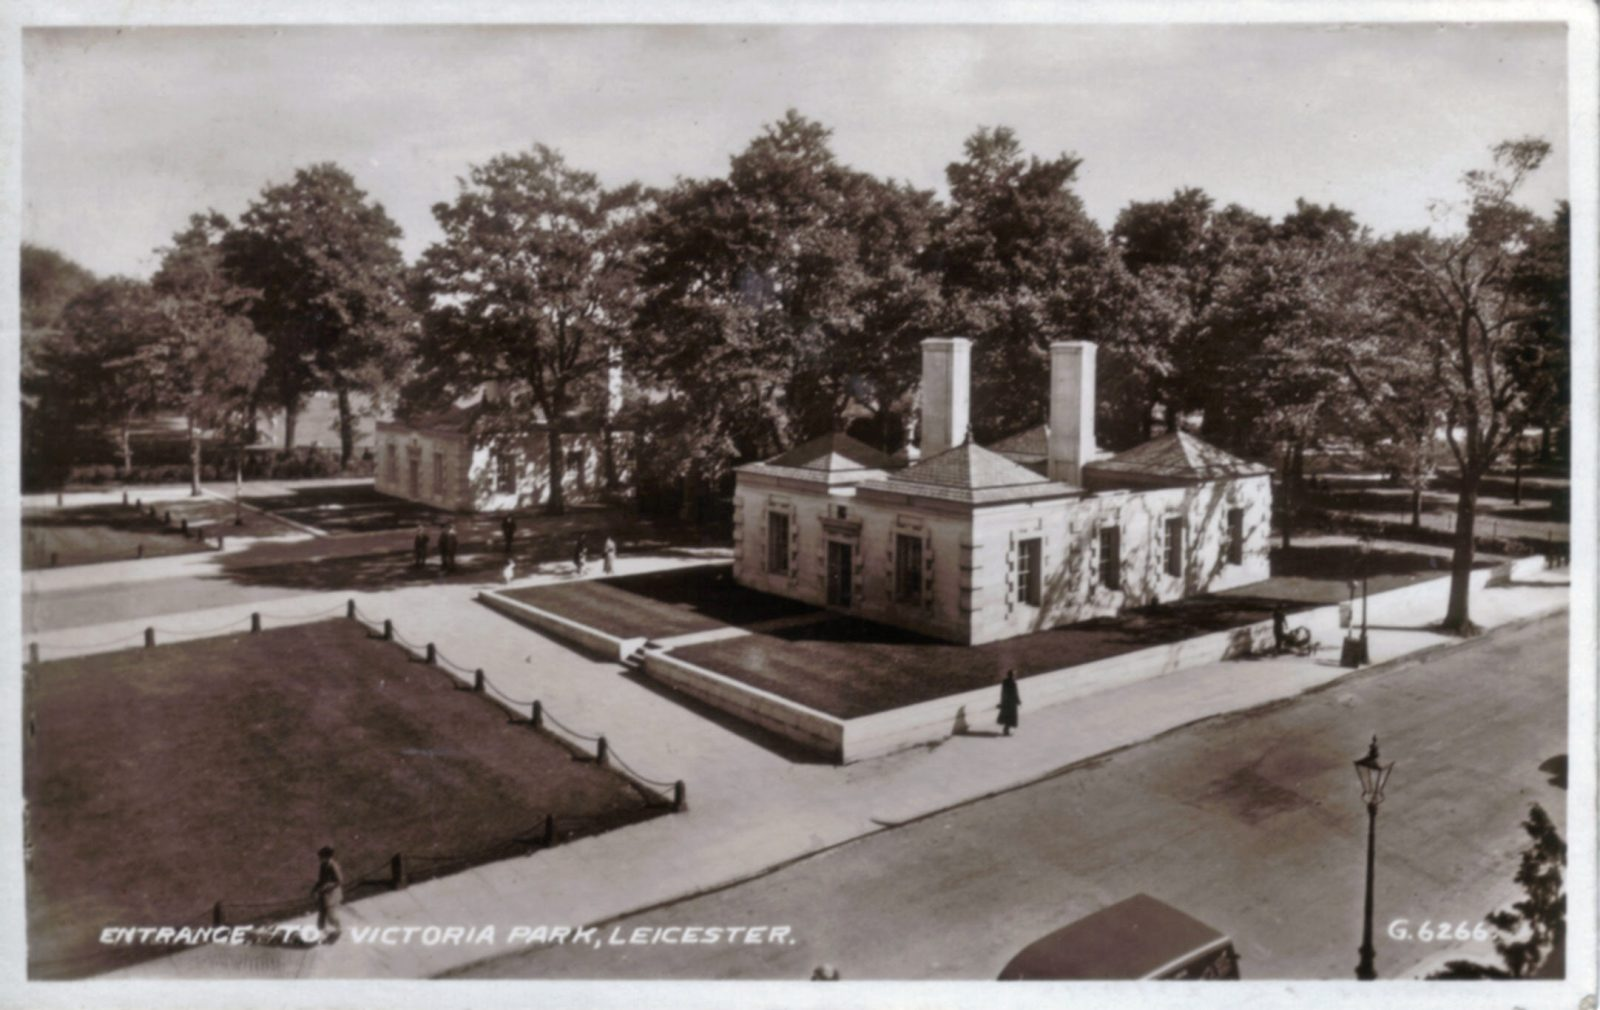 Victoria Park, Leicester. 1921-1940: Lutyens lodge, with railings removed during 2nd World War. Franked 1940. (File:1069)